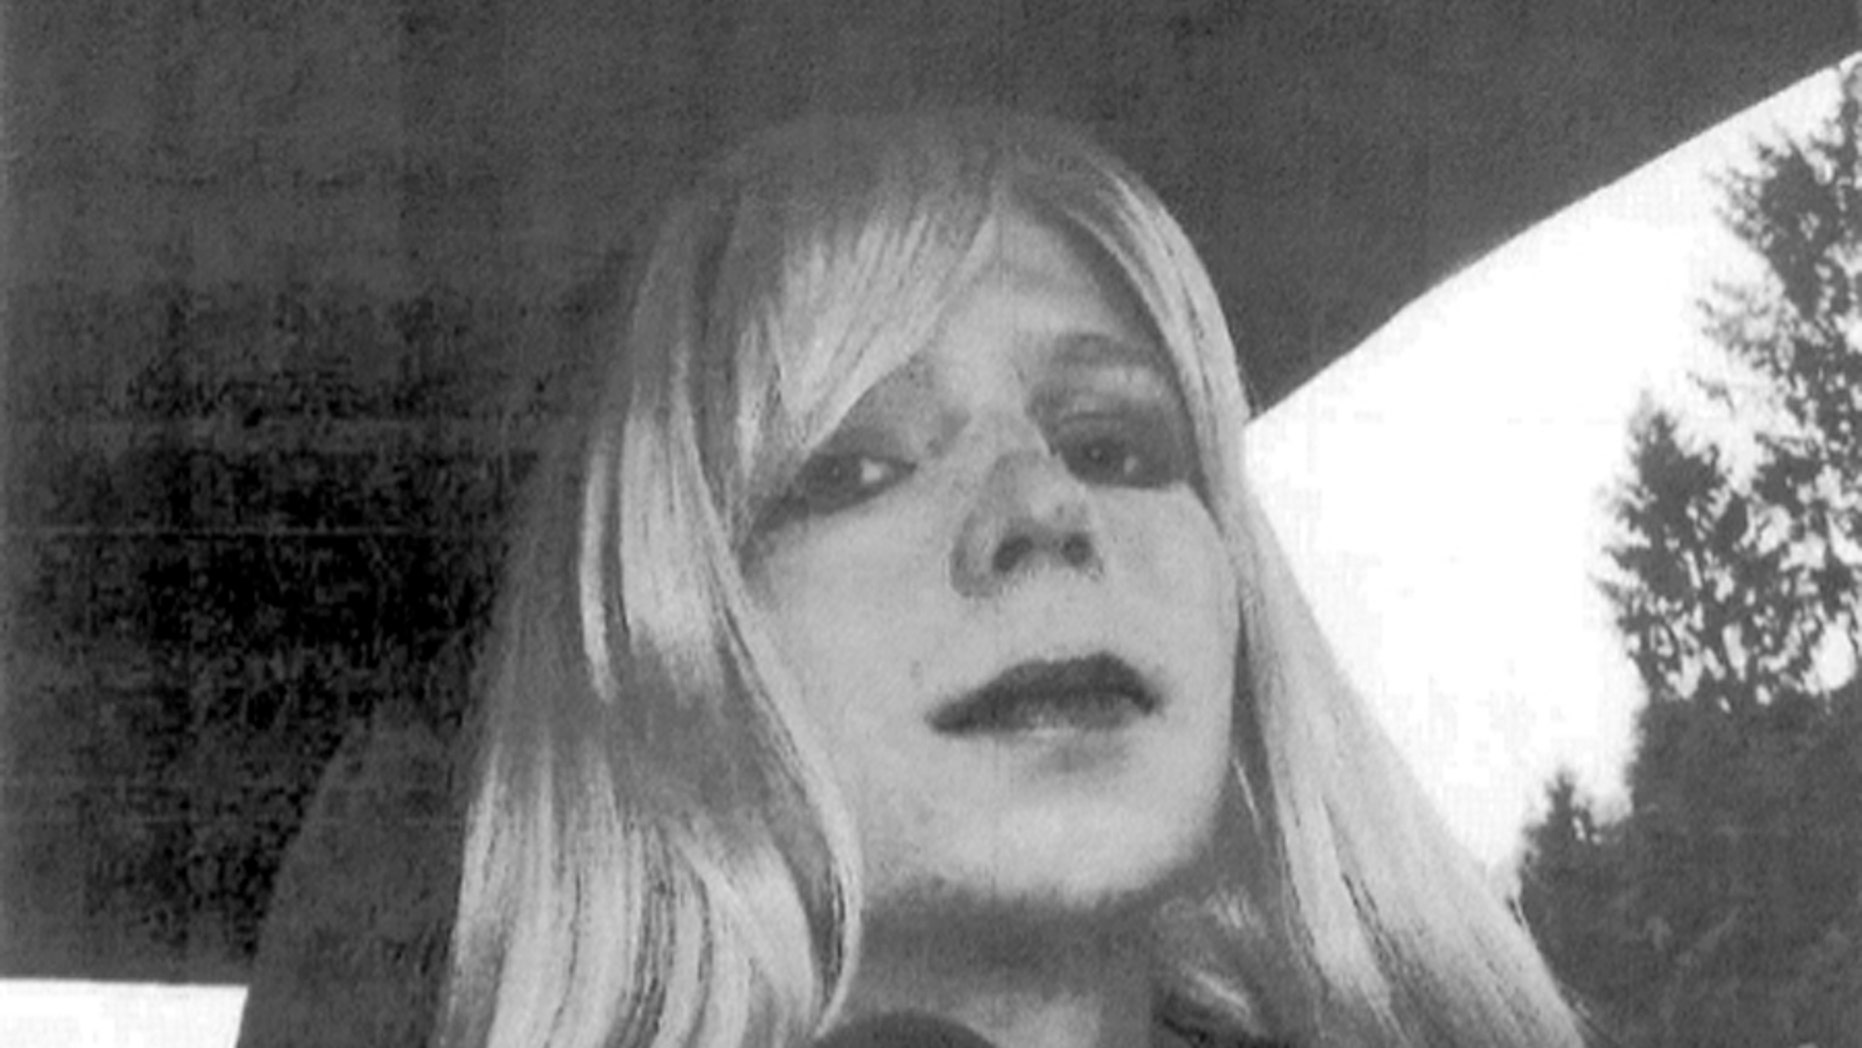 FILE - In this undated file photo provided by the U.S. Army, Pfc. Chelsea Manning poses for a photo wearing a wig and lipstick. In an unprecedented move, the Pentagon is trying to transfer convicted national security leaker Pvt. Chelsea Manning to a civilian prison so she can get treatment for her gender disorder, defense officials said Tuesday May 13, 2014.  (AP Photo/U.S. Army, File)